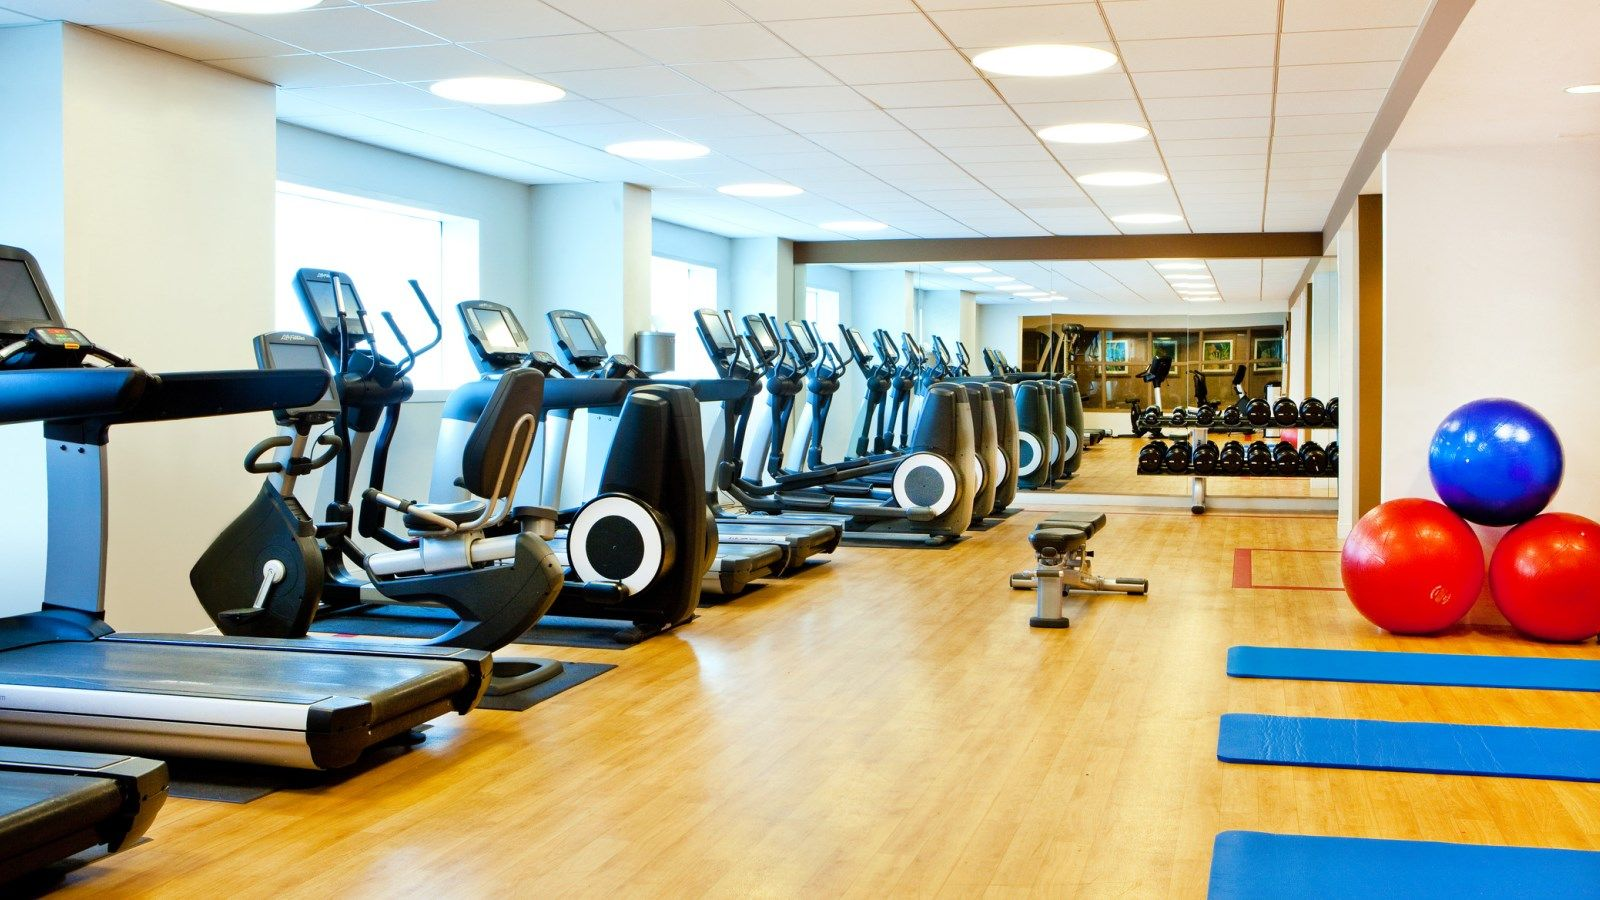 sheraton fitness center